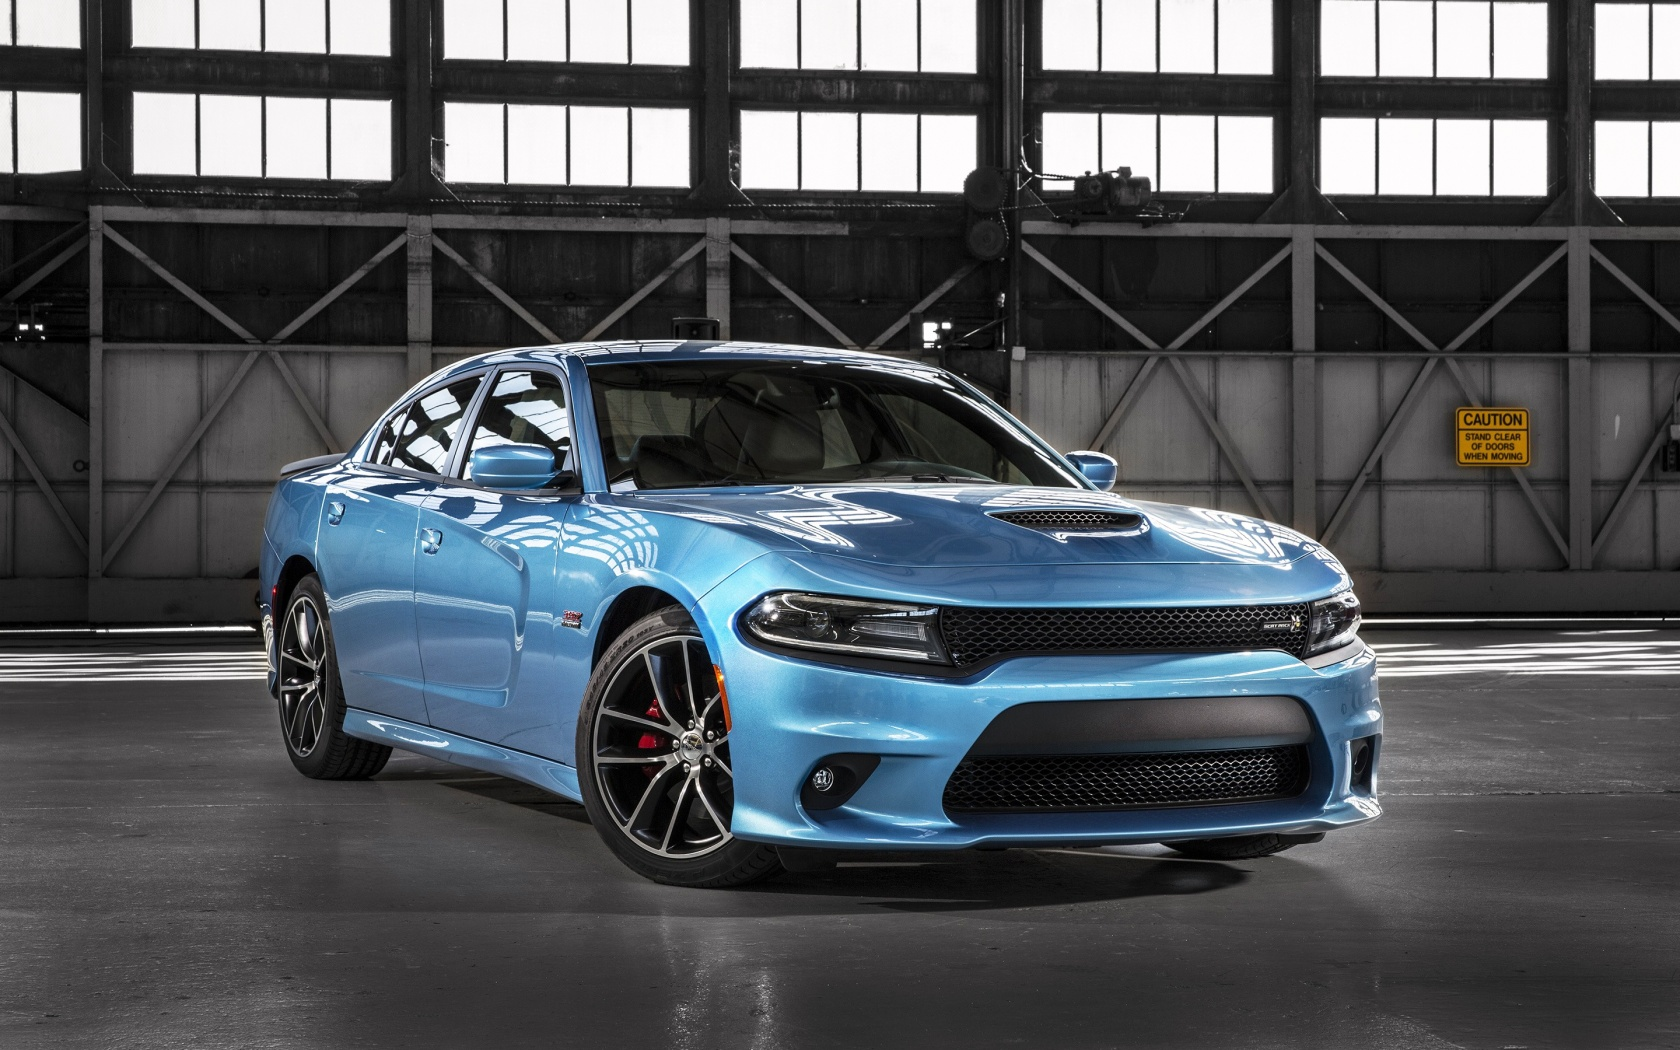 Challenger Scat Pack >> Dodge Charger RT Scat Pack #4139560, 2880x1800 | All For Desktop